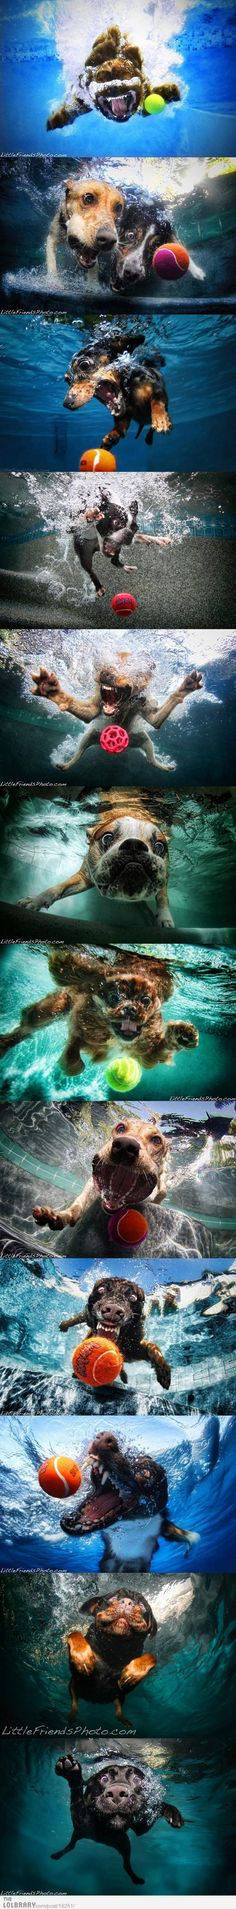 Amazing underwater dog photography by www.littlefriendsphoto.com. Finao has lots of pets in the office and things like this make our day! www.finao.com